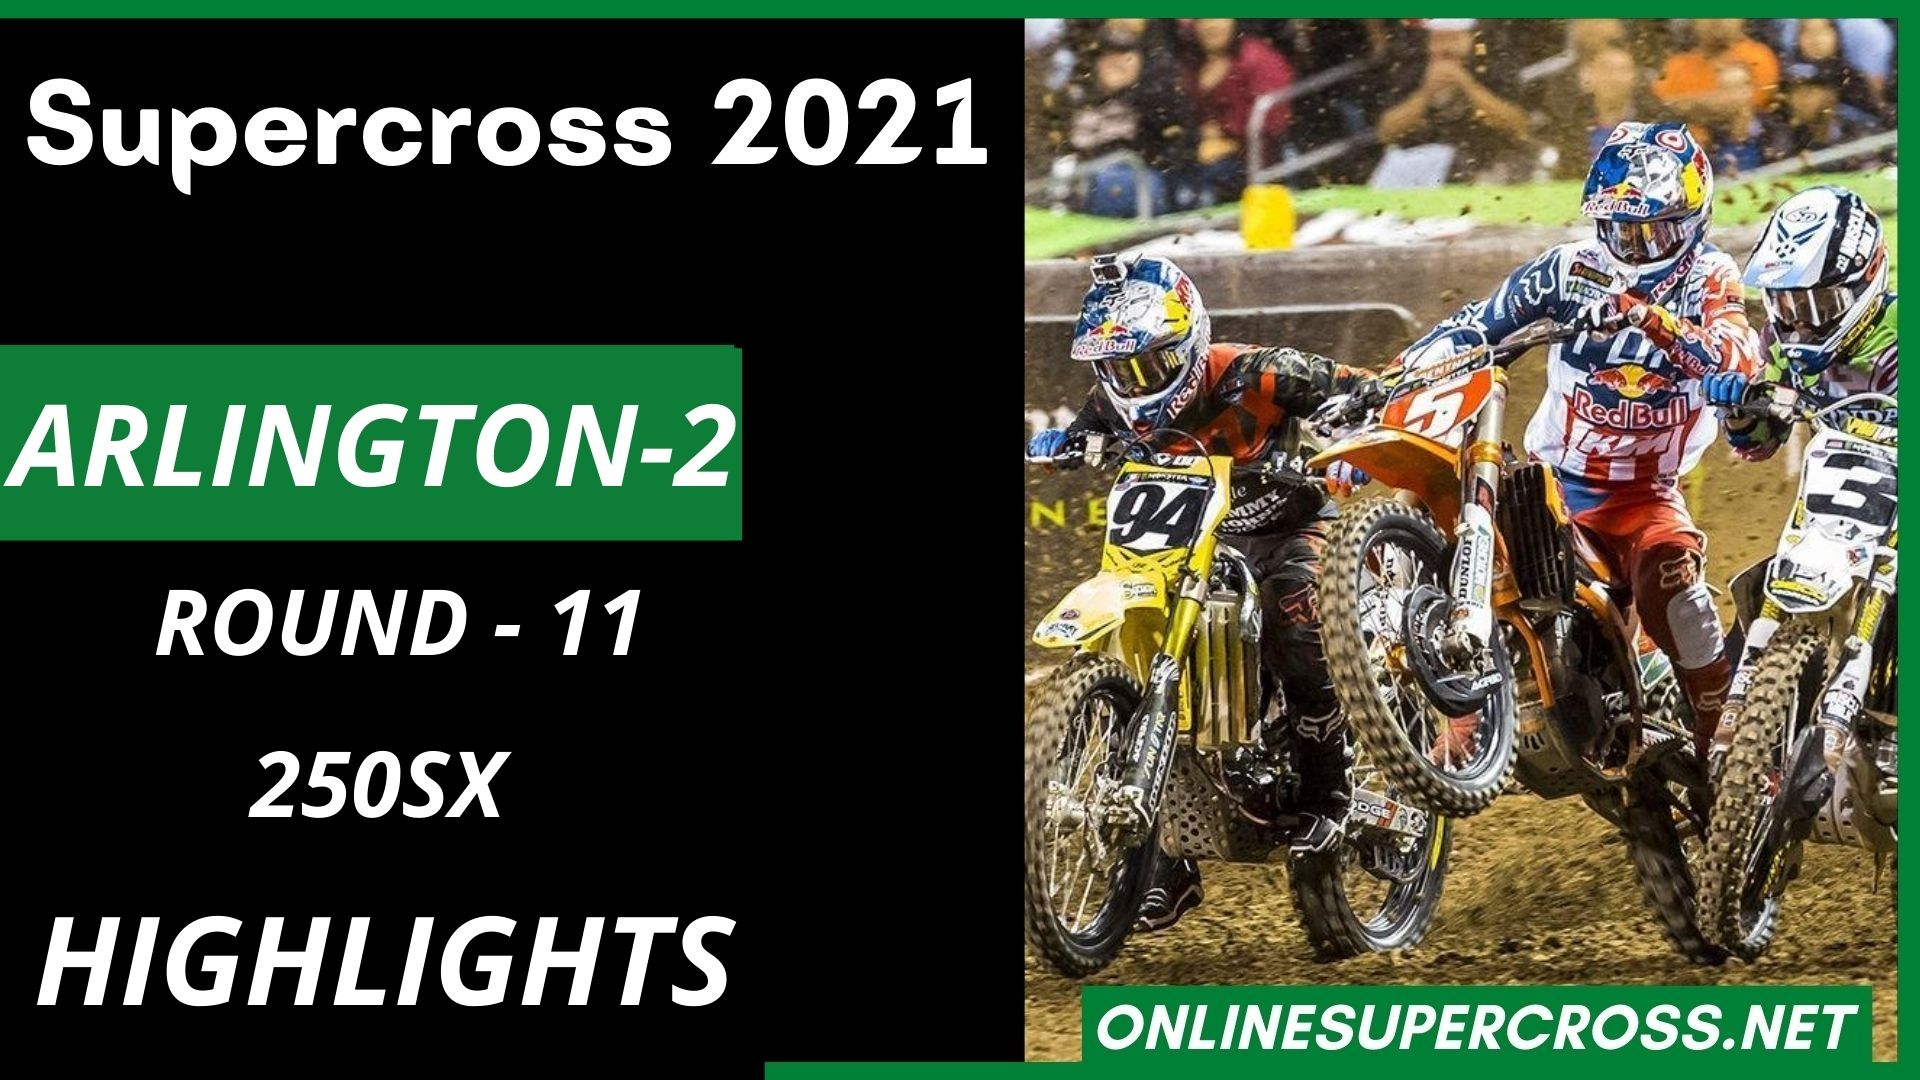 Arlington 2 Round 11 Supercross 250SX Highlights 2021